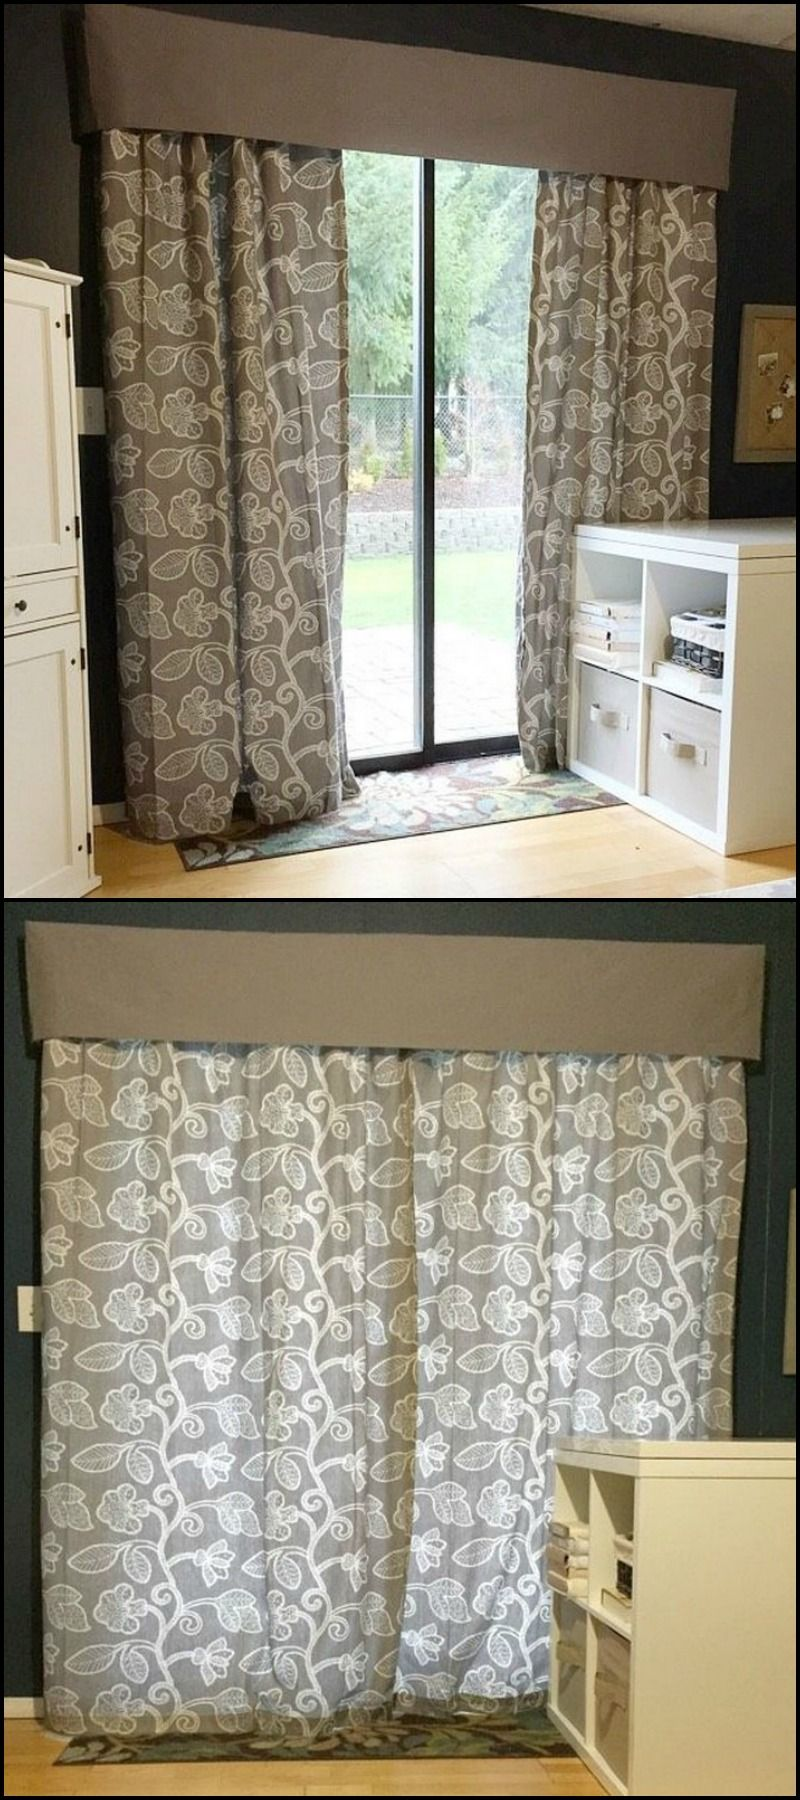 Lower Your Energy Bill With Diy Insulated Curtains Http Theownerbuildernetwork Co Cjit These Curtains Wer Insulated Curtains Home Diy Home Interior Design